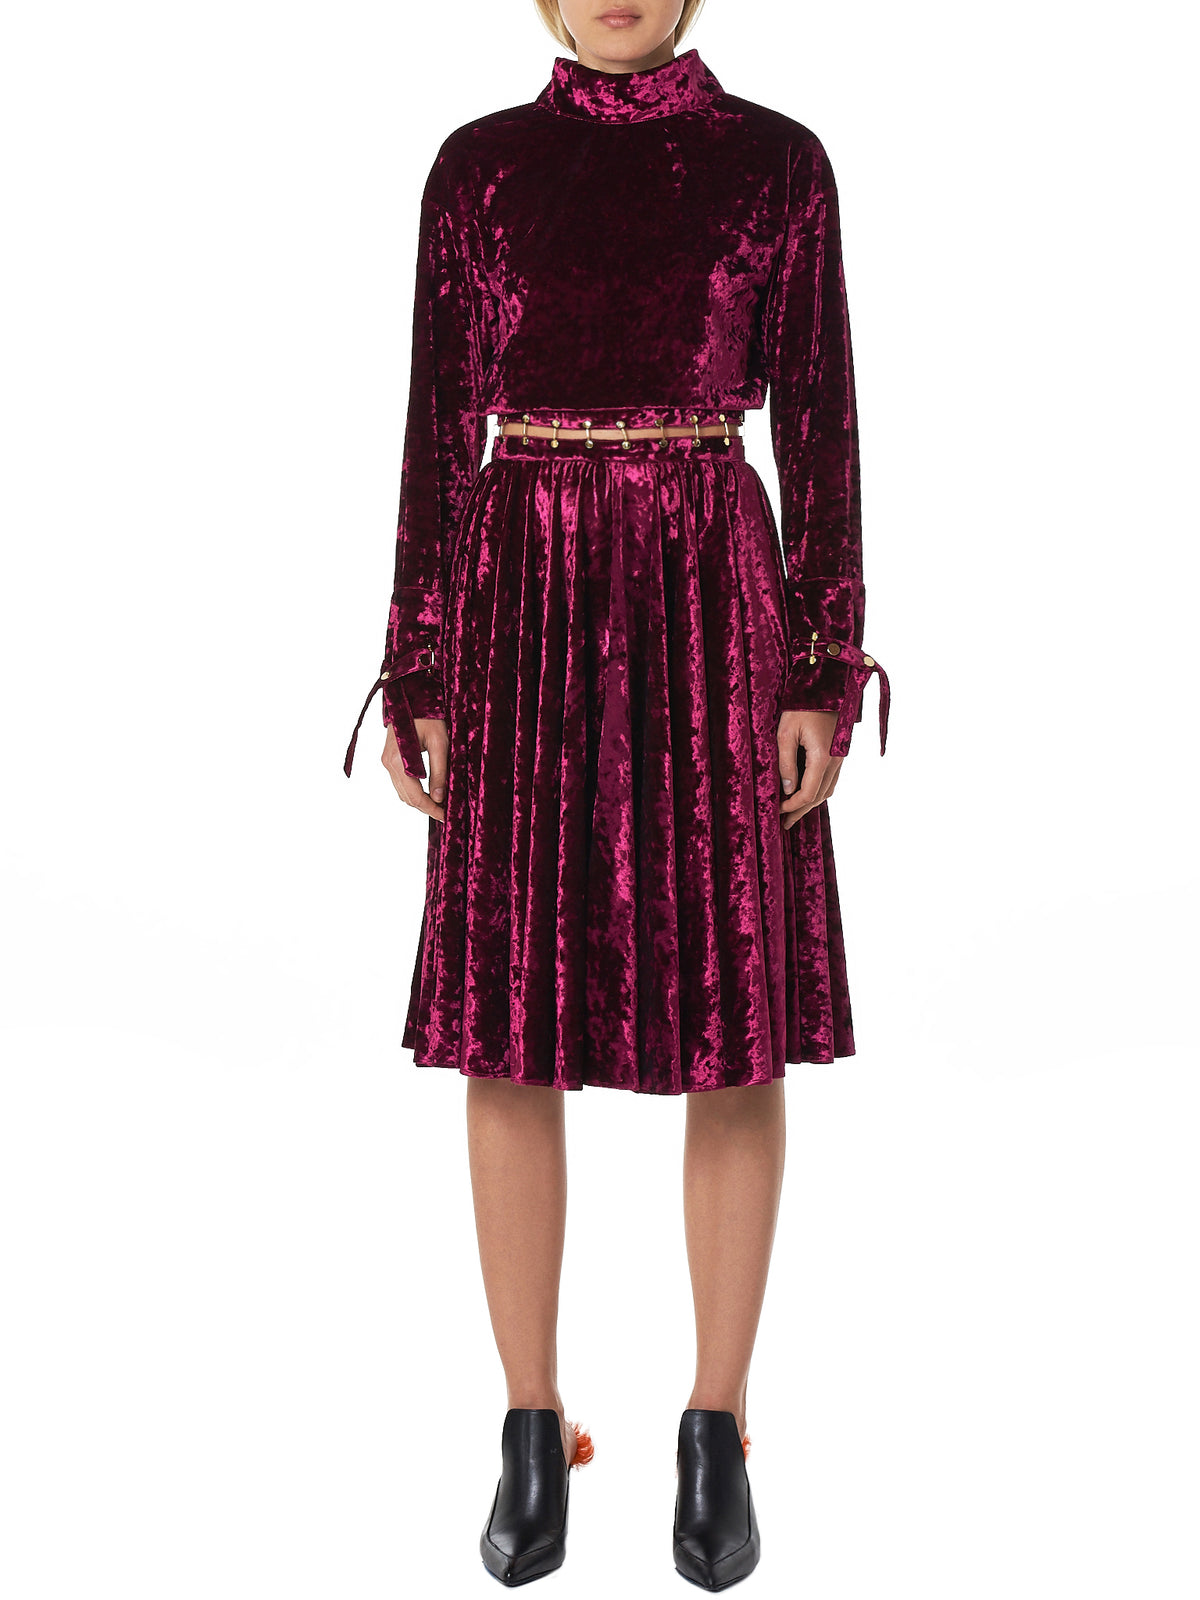 Mottled Velvet Open Waist Dress (HW3188004-PURPLE)